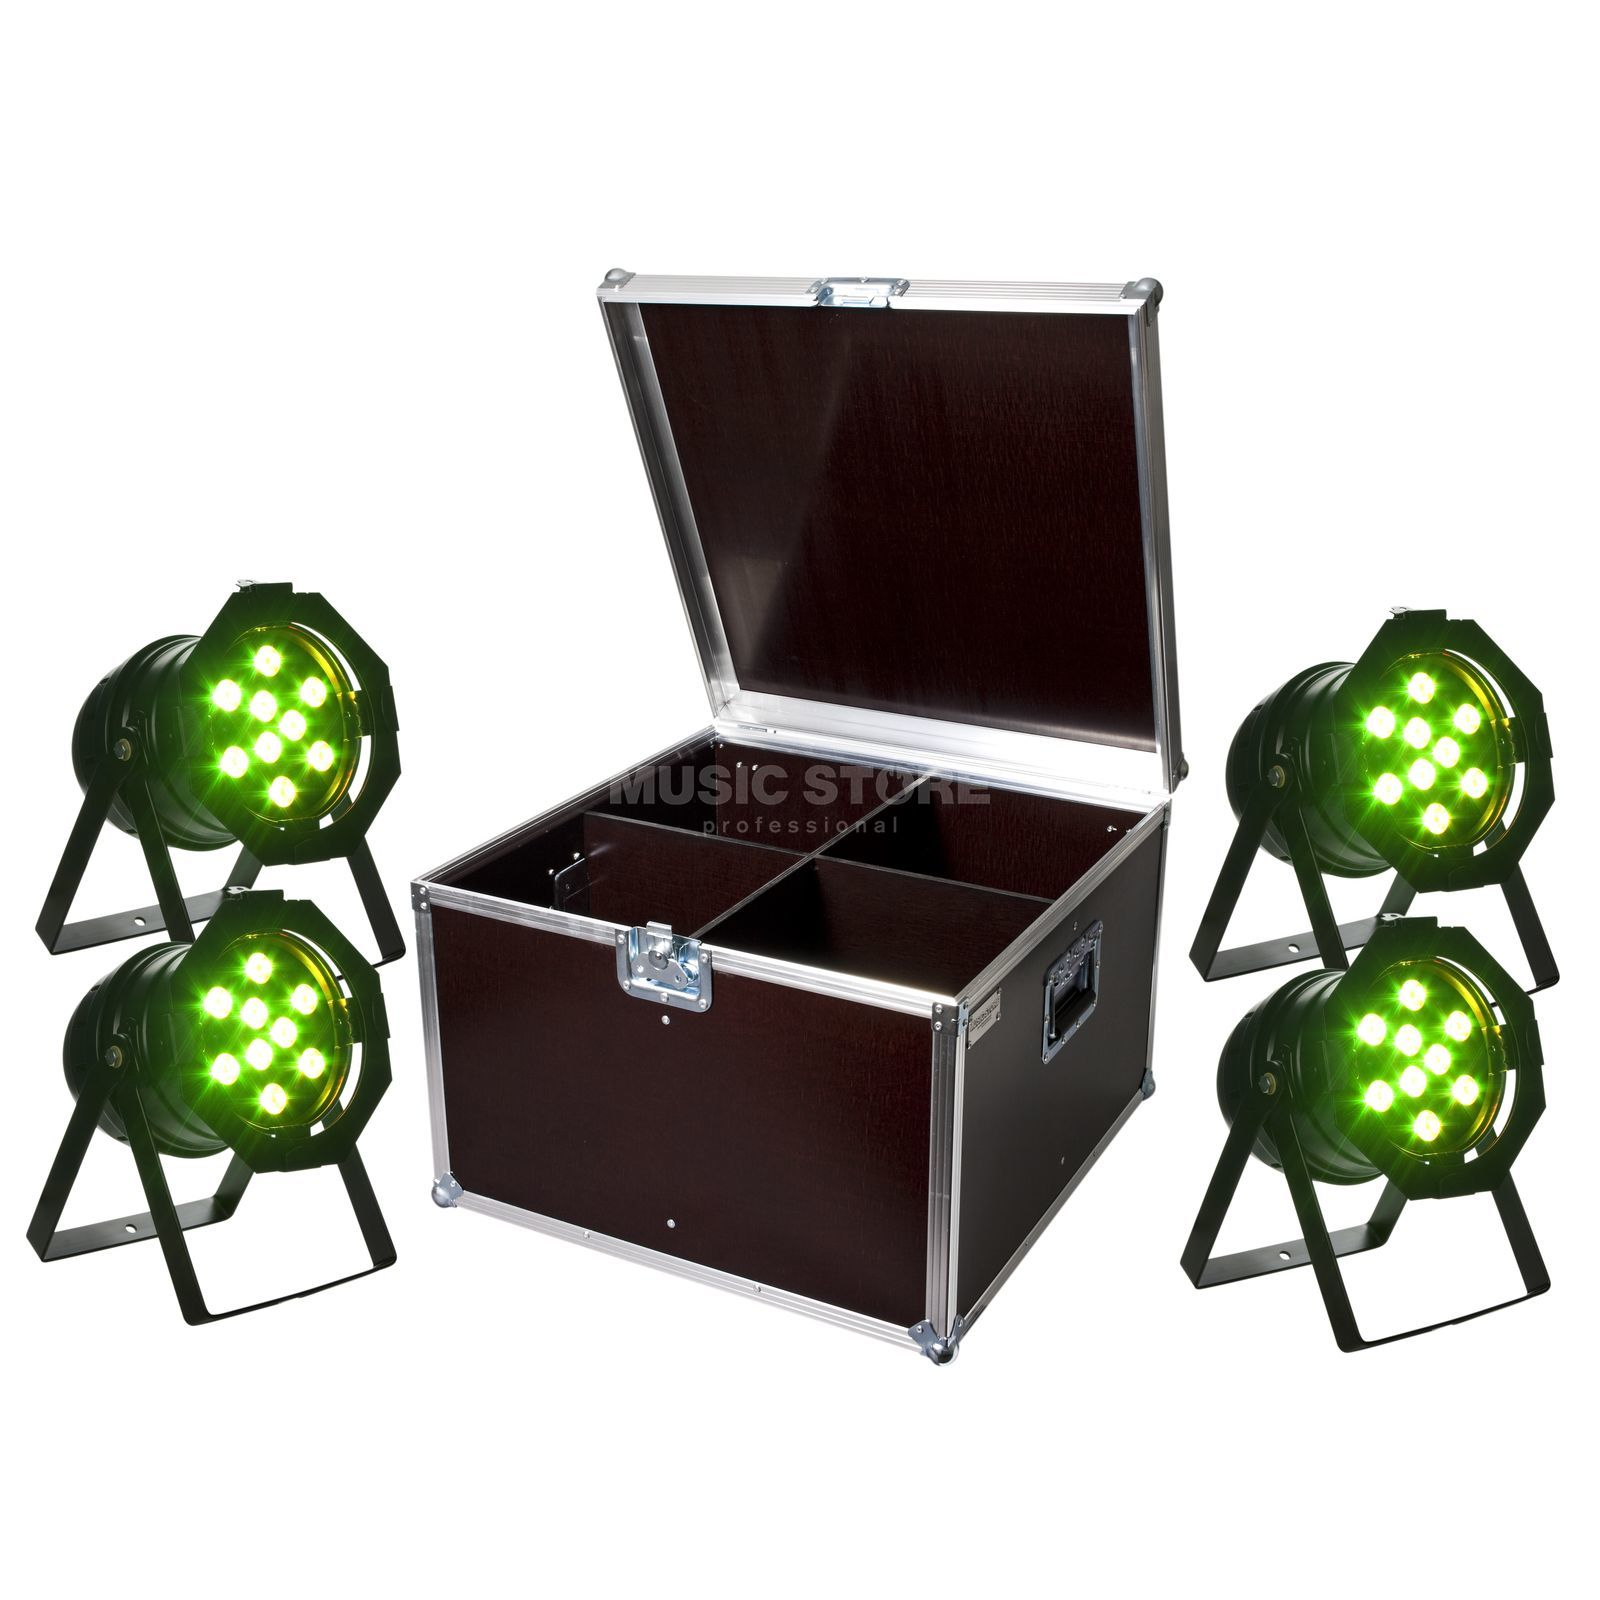 LightmaXX Platinum LED PAR 56 Tour - Set Produktbild